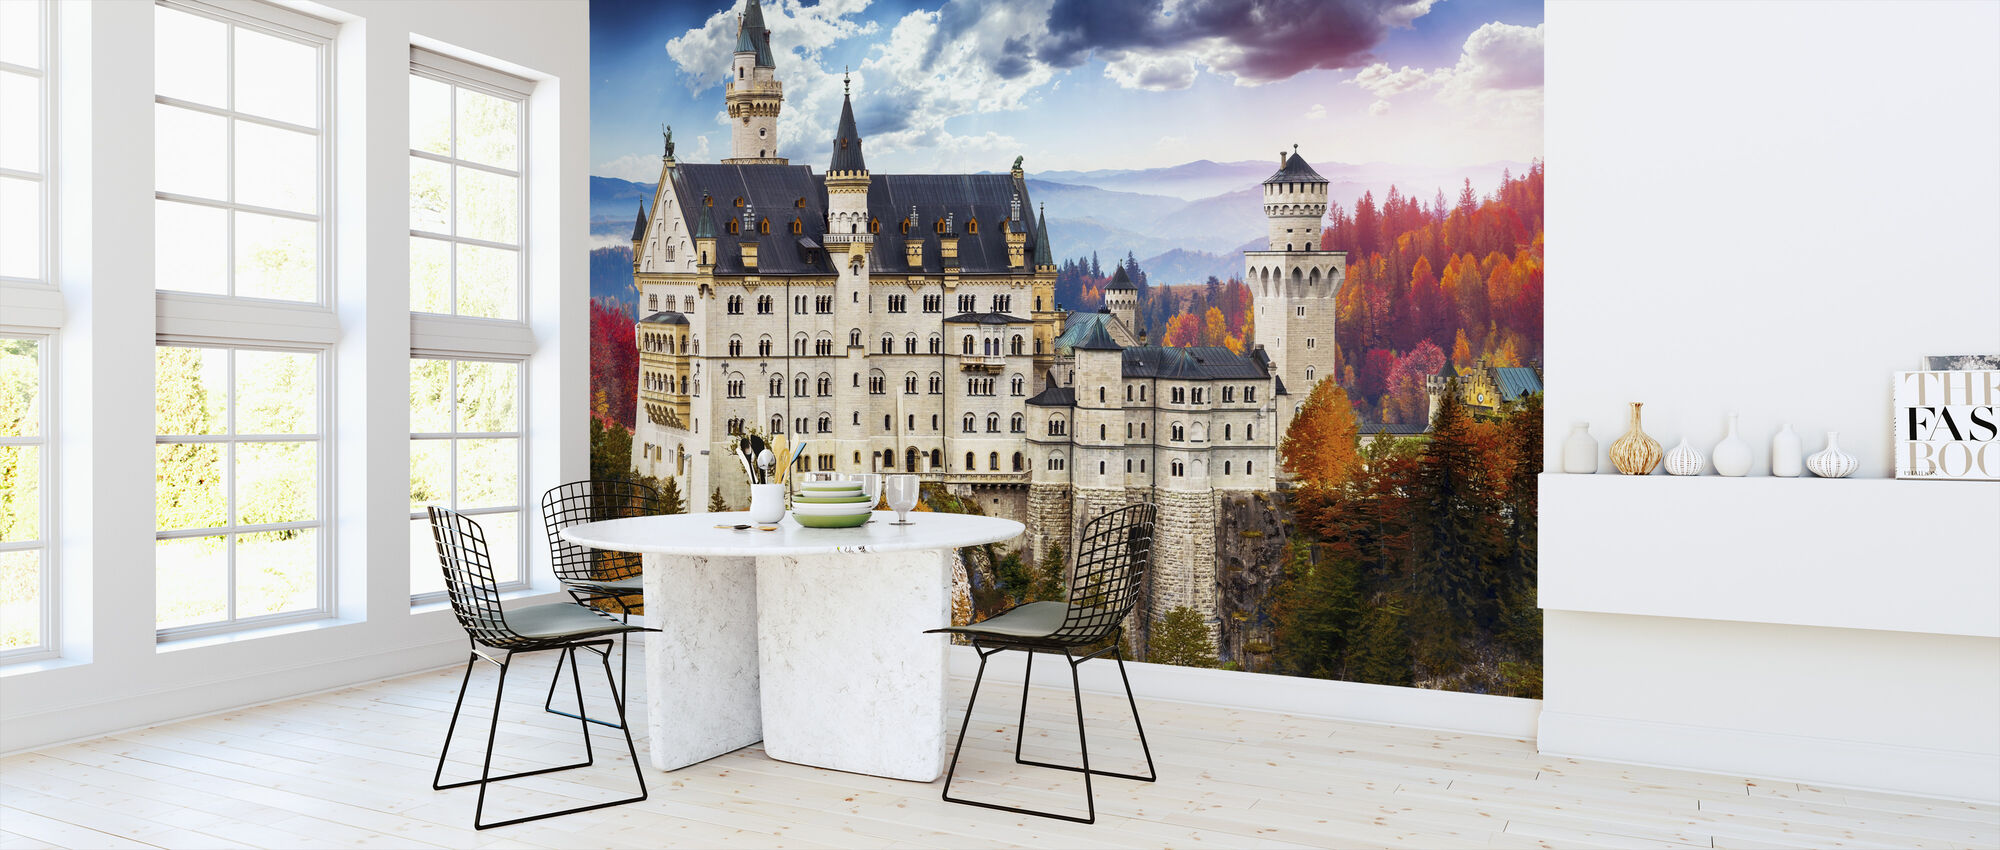 Neuschwanstein Castle - Wallpaper - Kitchen